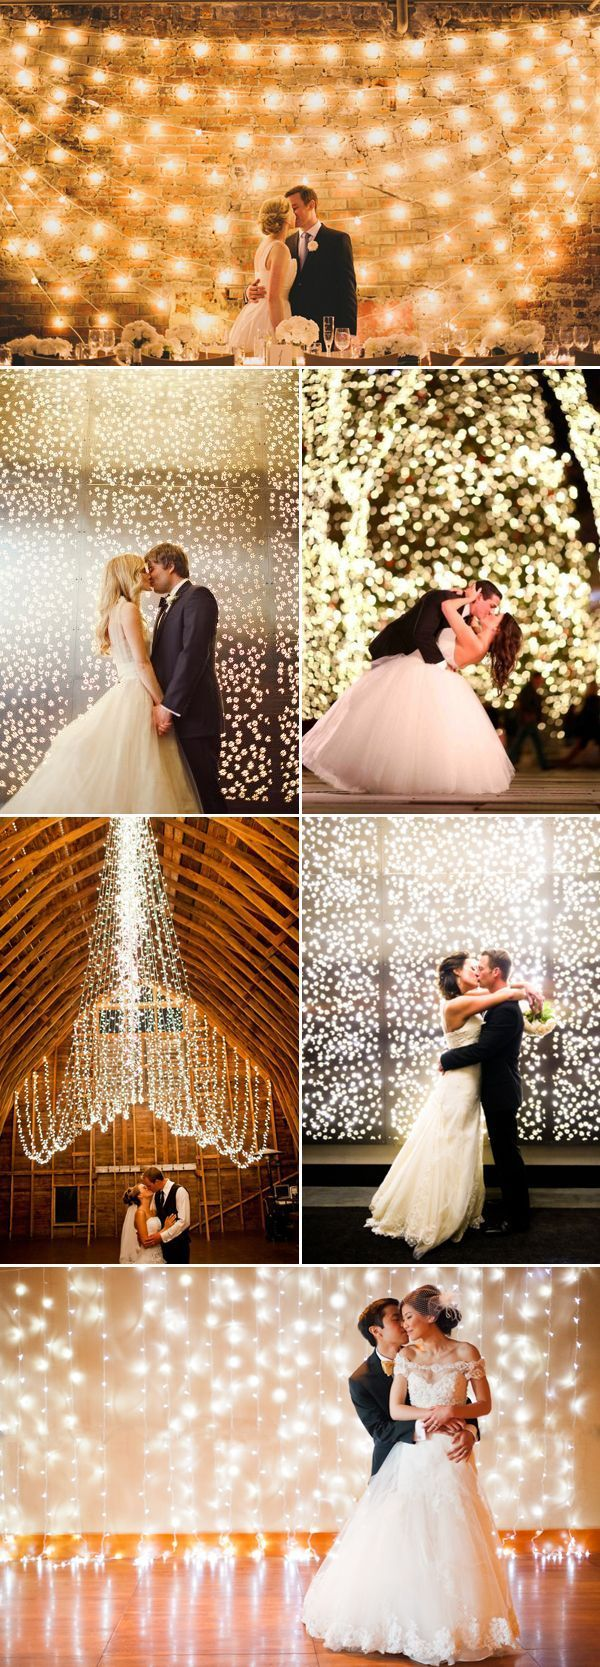 Hanging lights wedding decor  Beautiful and Stylish Wedding Hanging Decorations  Hanging lights